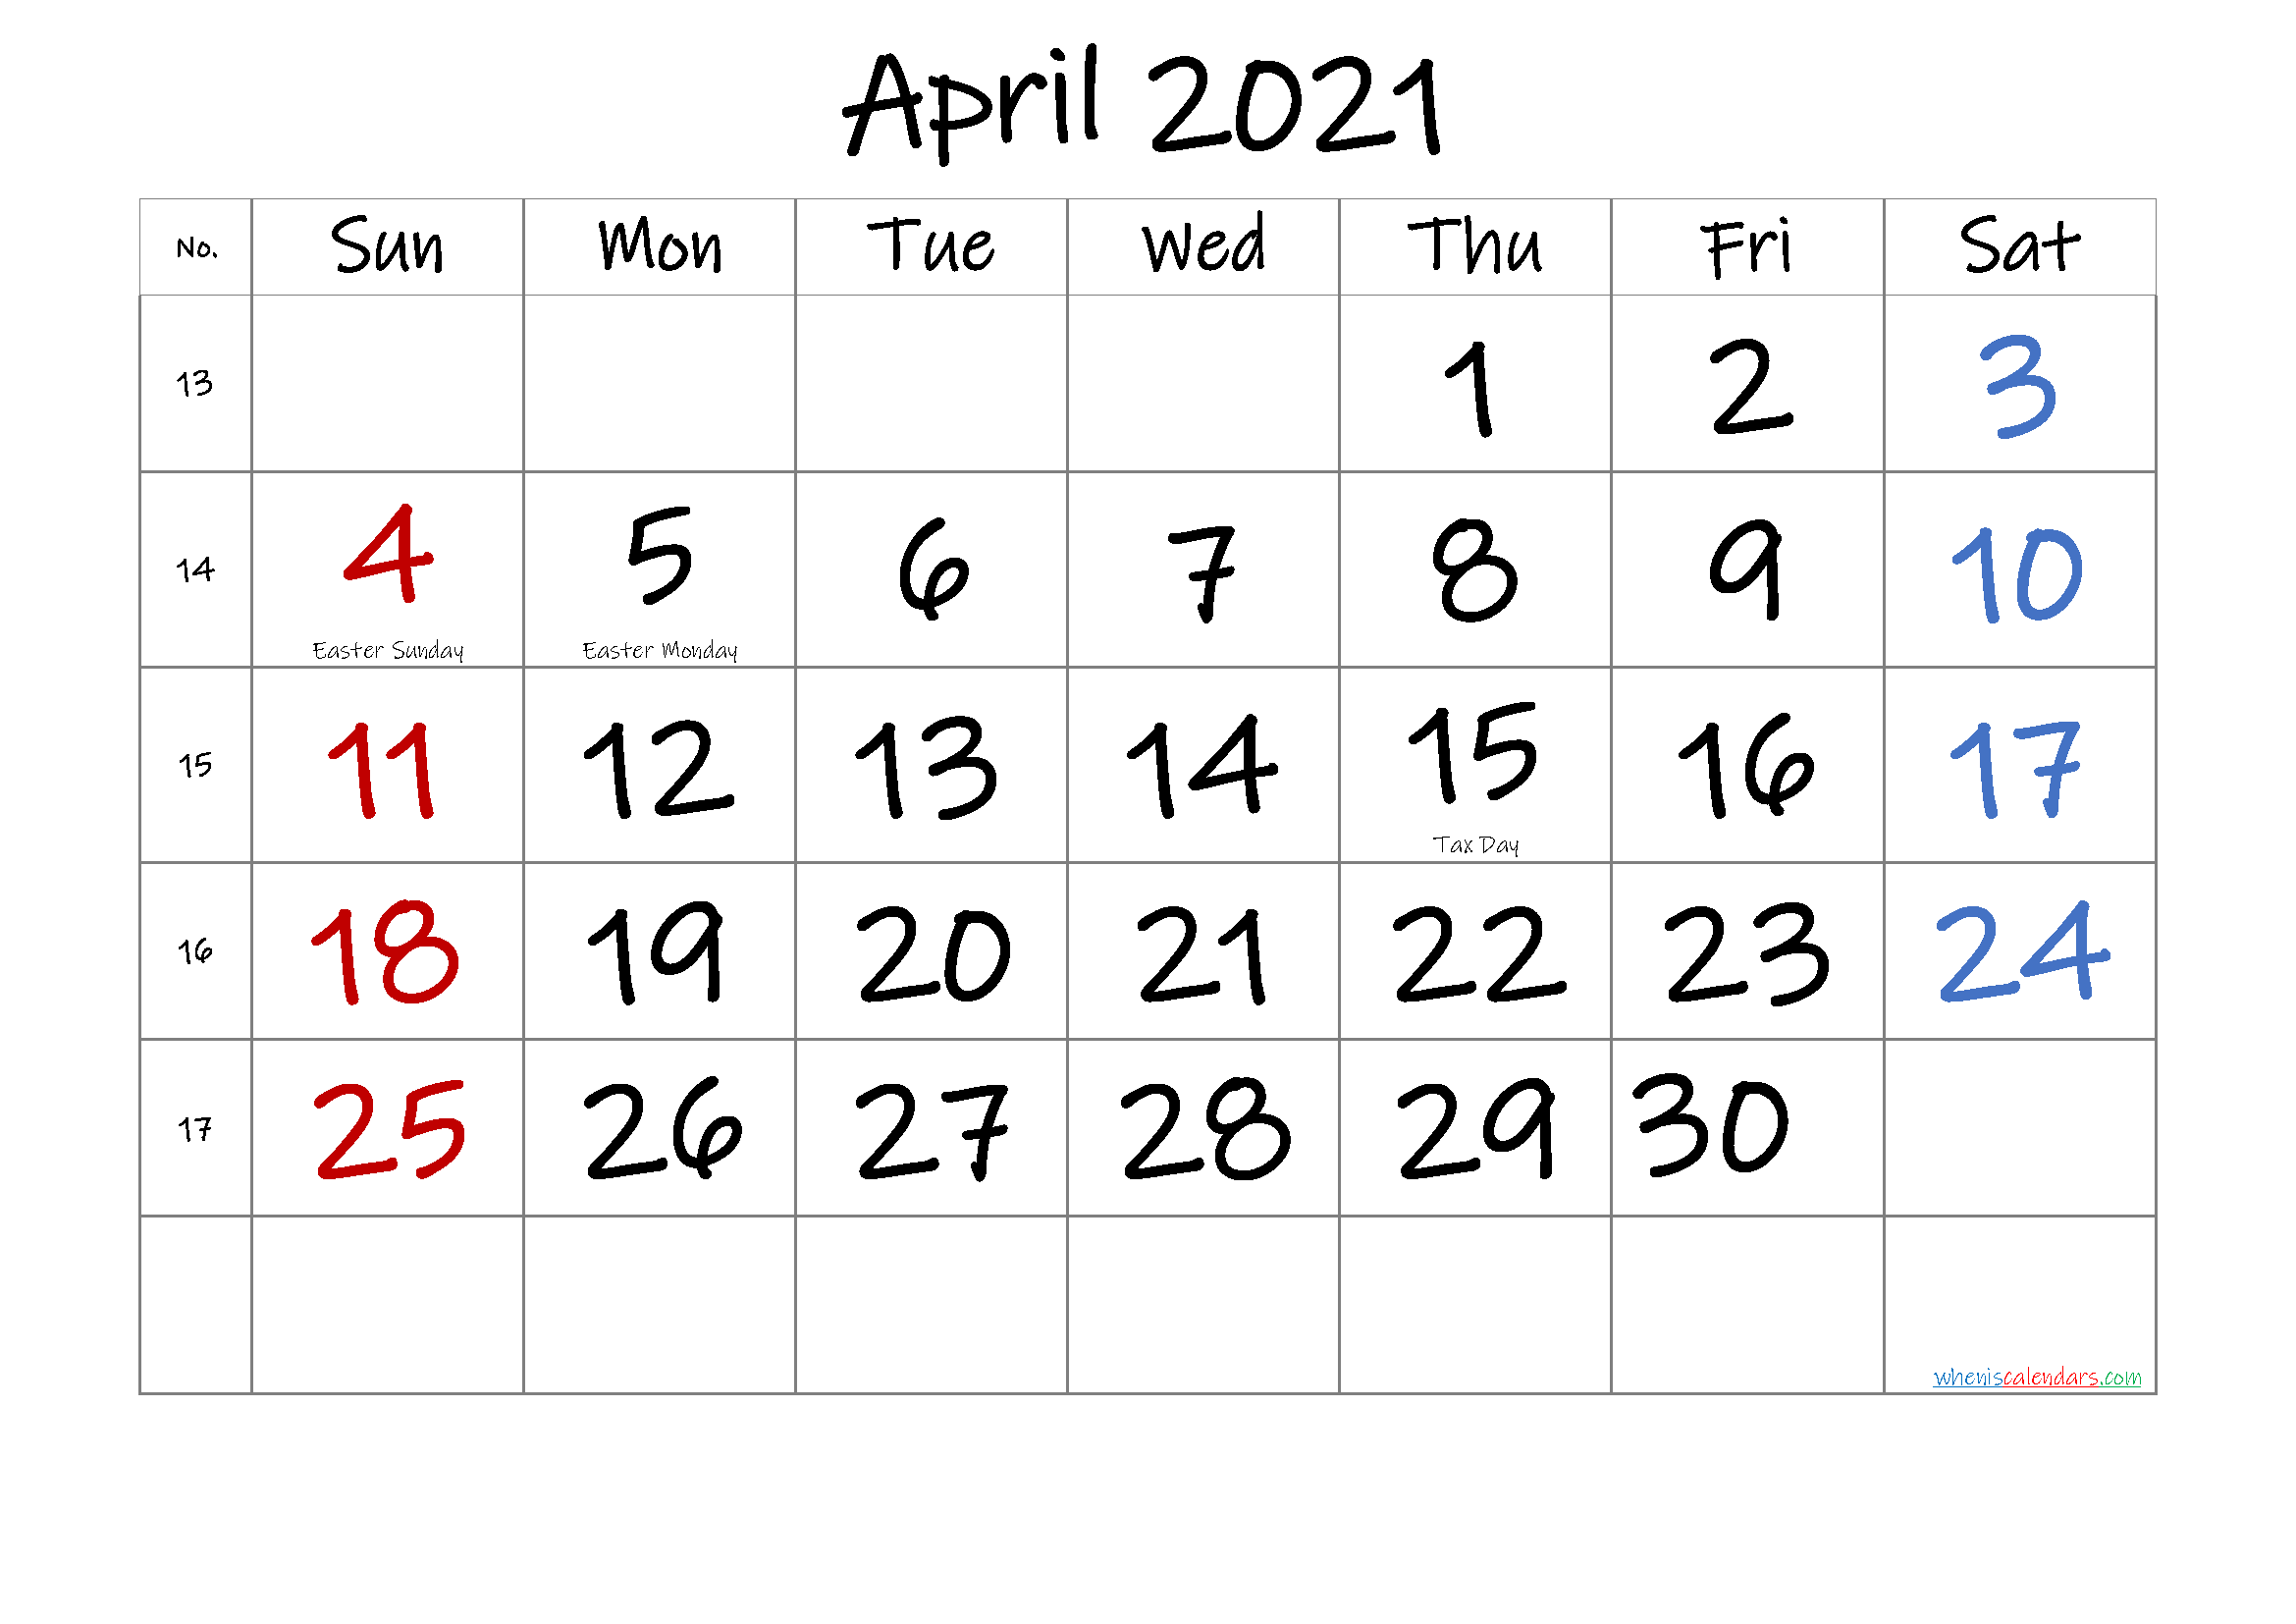 APRIL 2021 Printable Calendar with Holidays